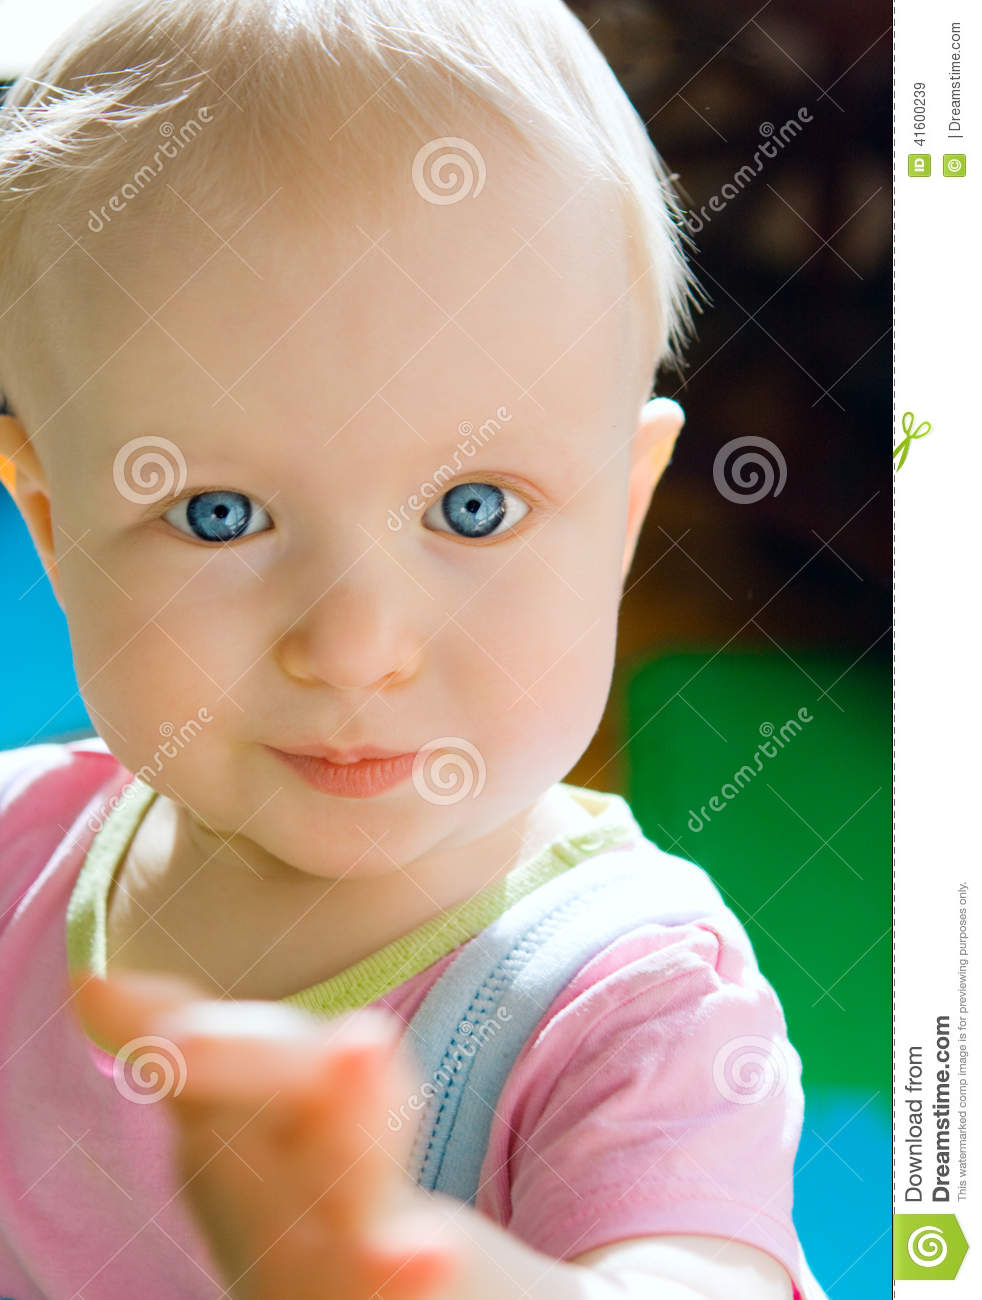 cute baby girl with blue eyes stock image - image of caucasian, life